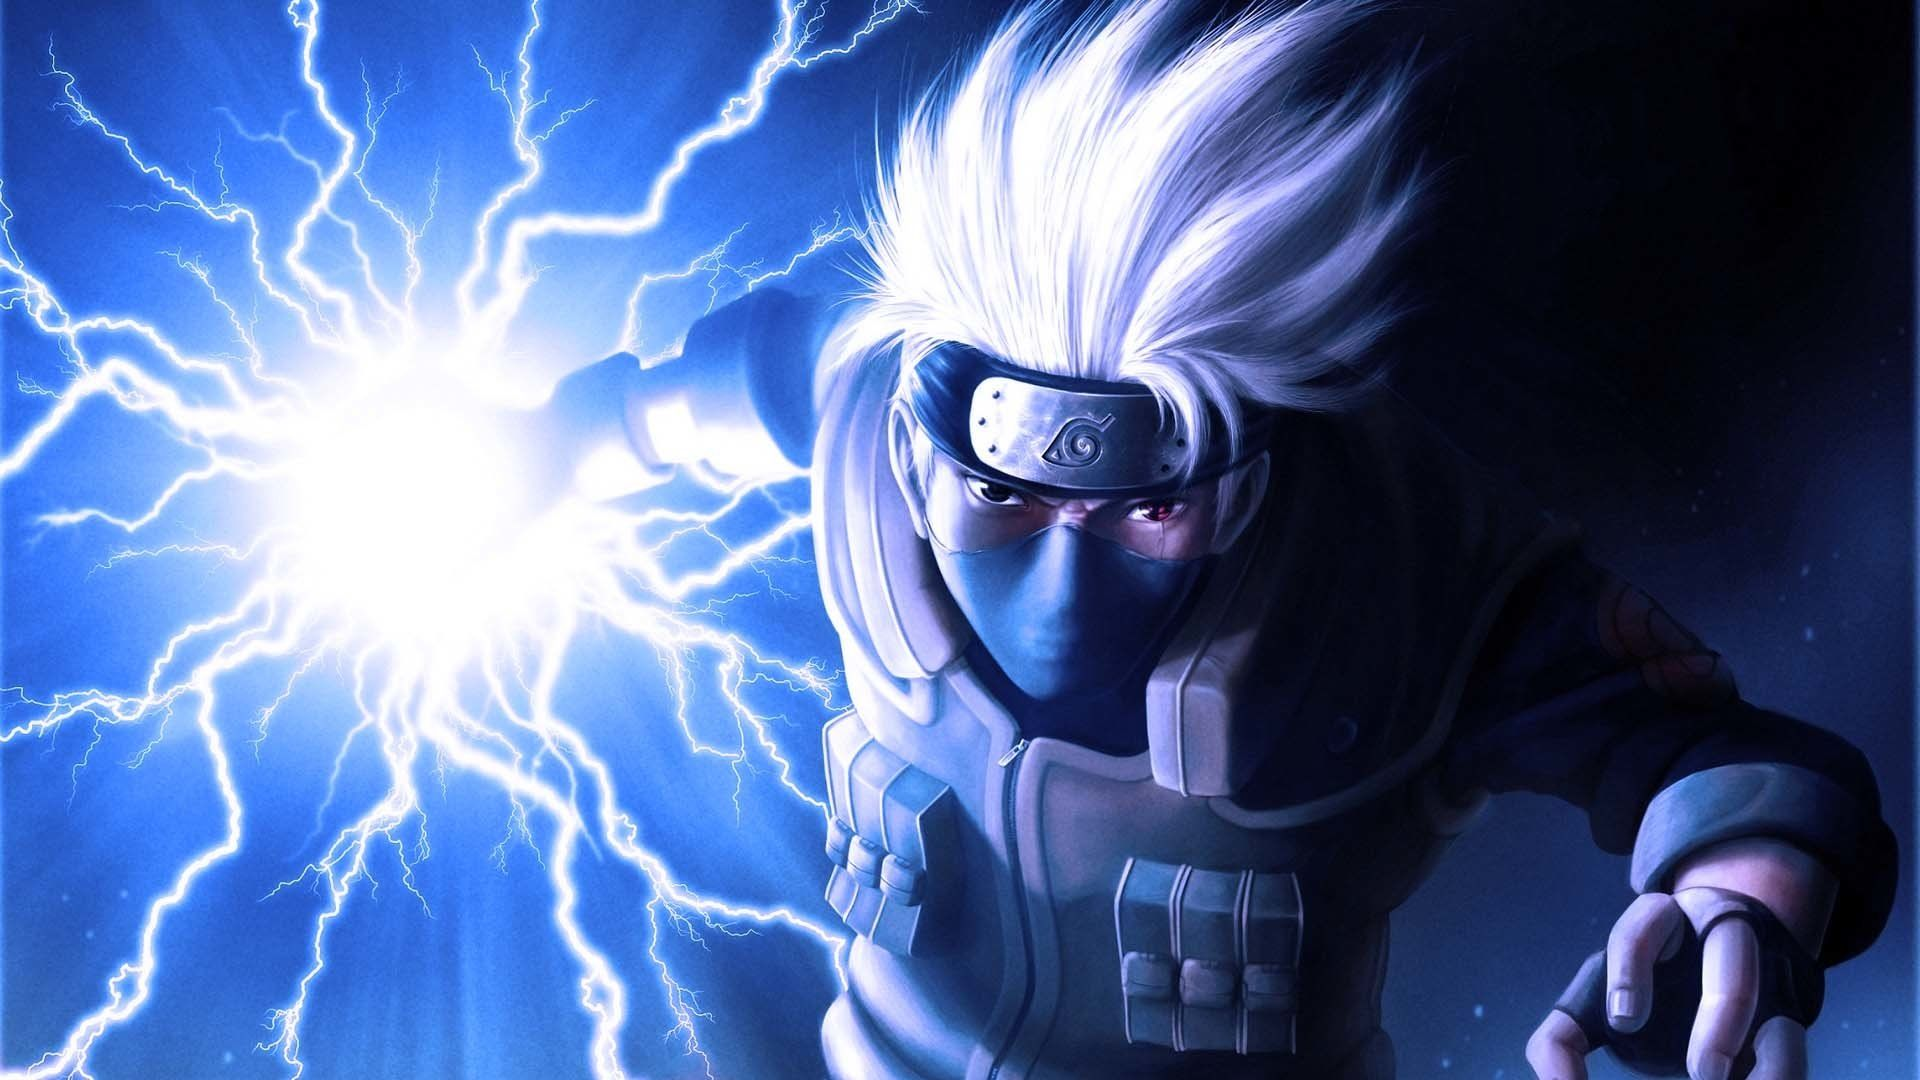 Unduh 60 Wallpaper Naruto Android 4k HD Gratid